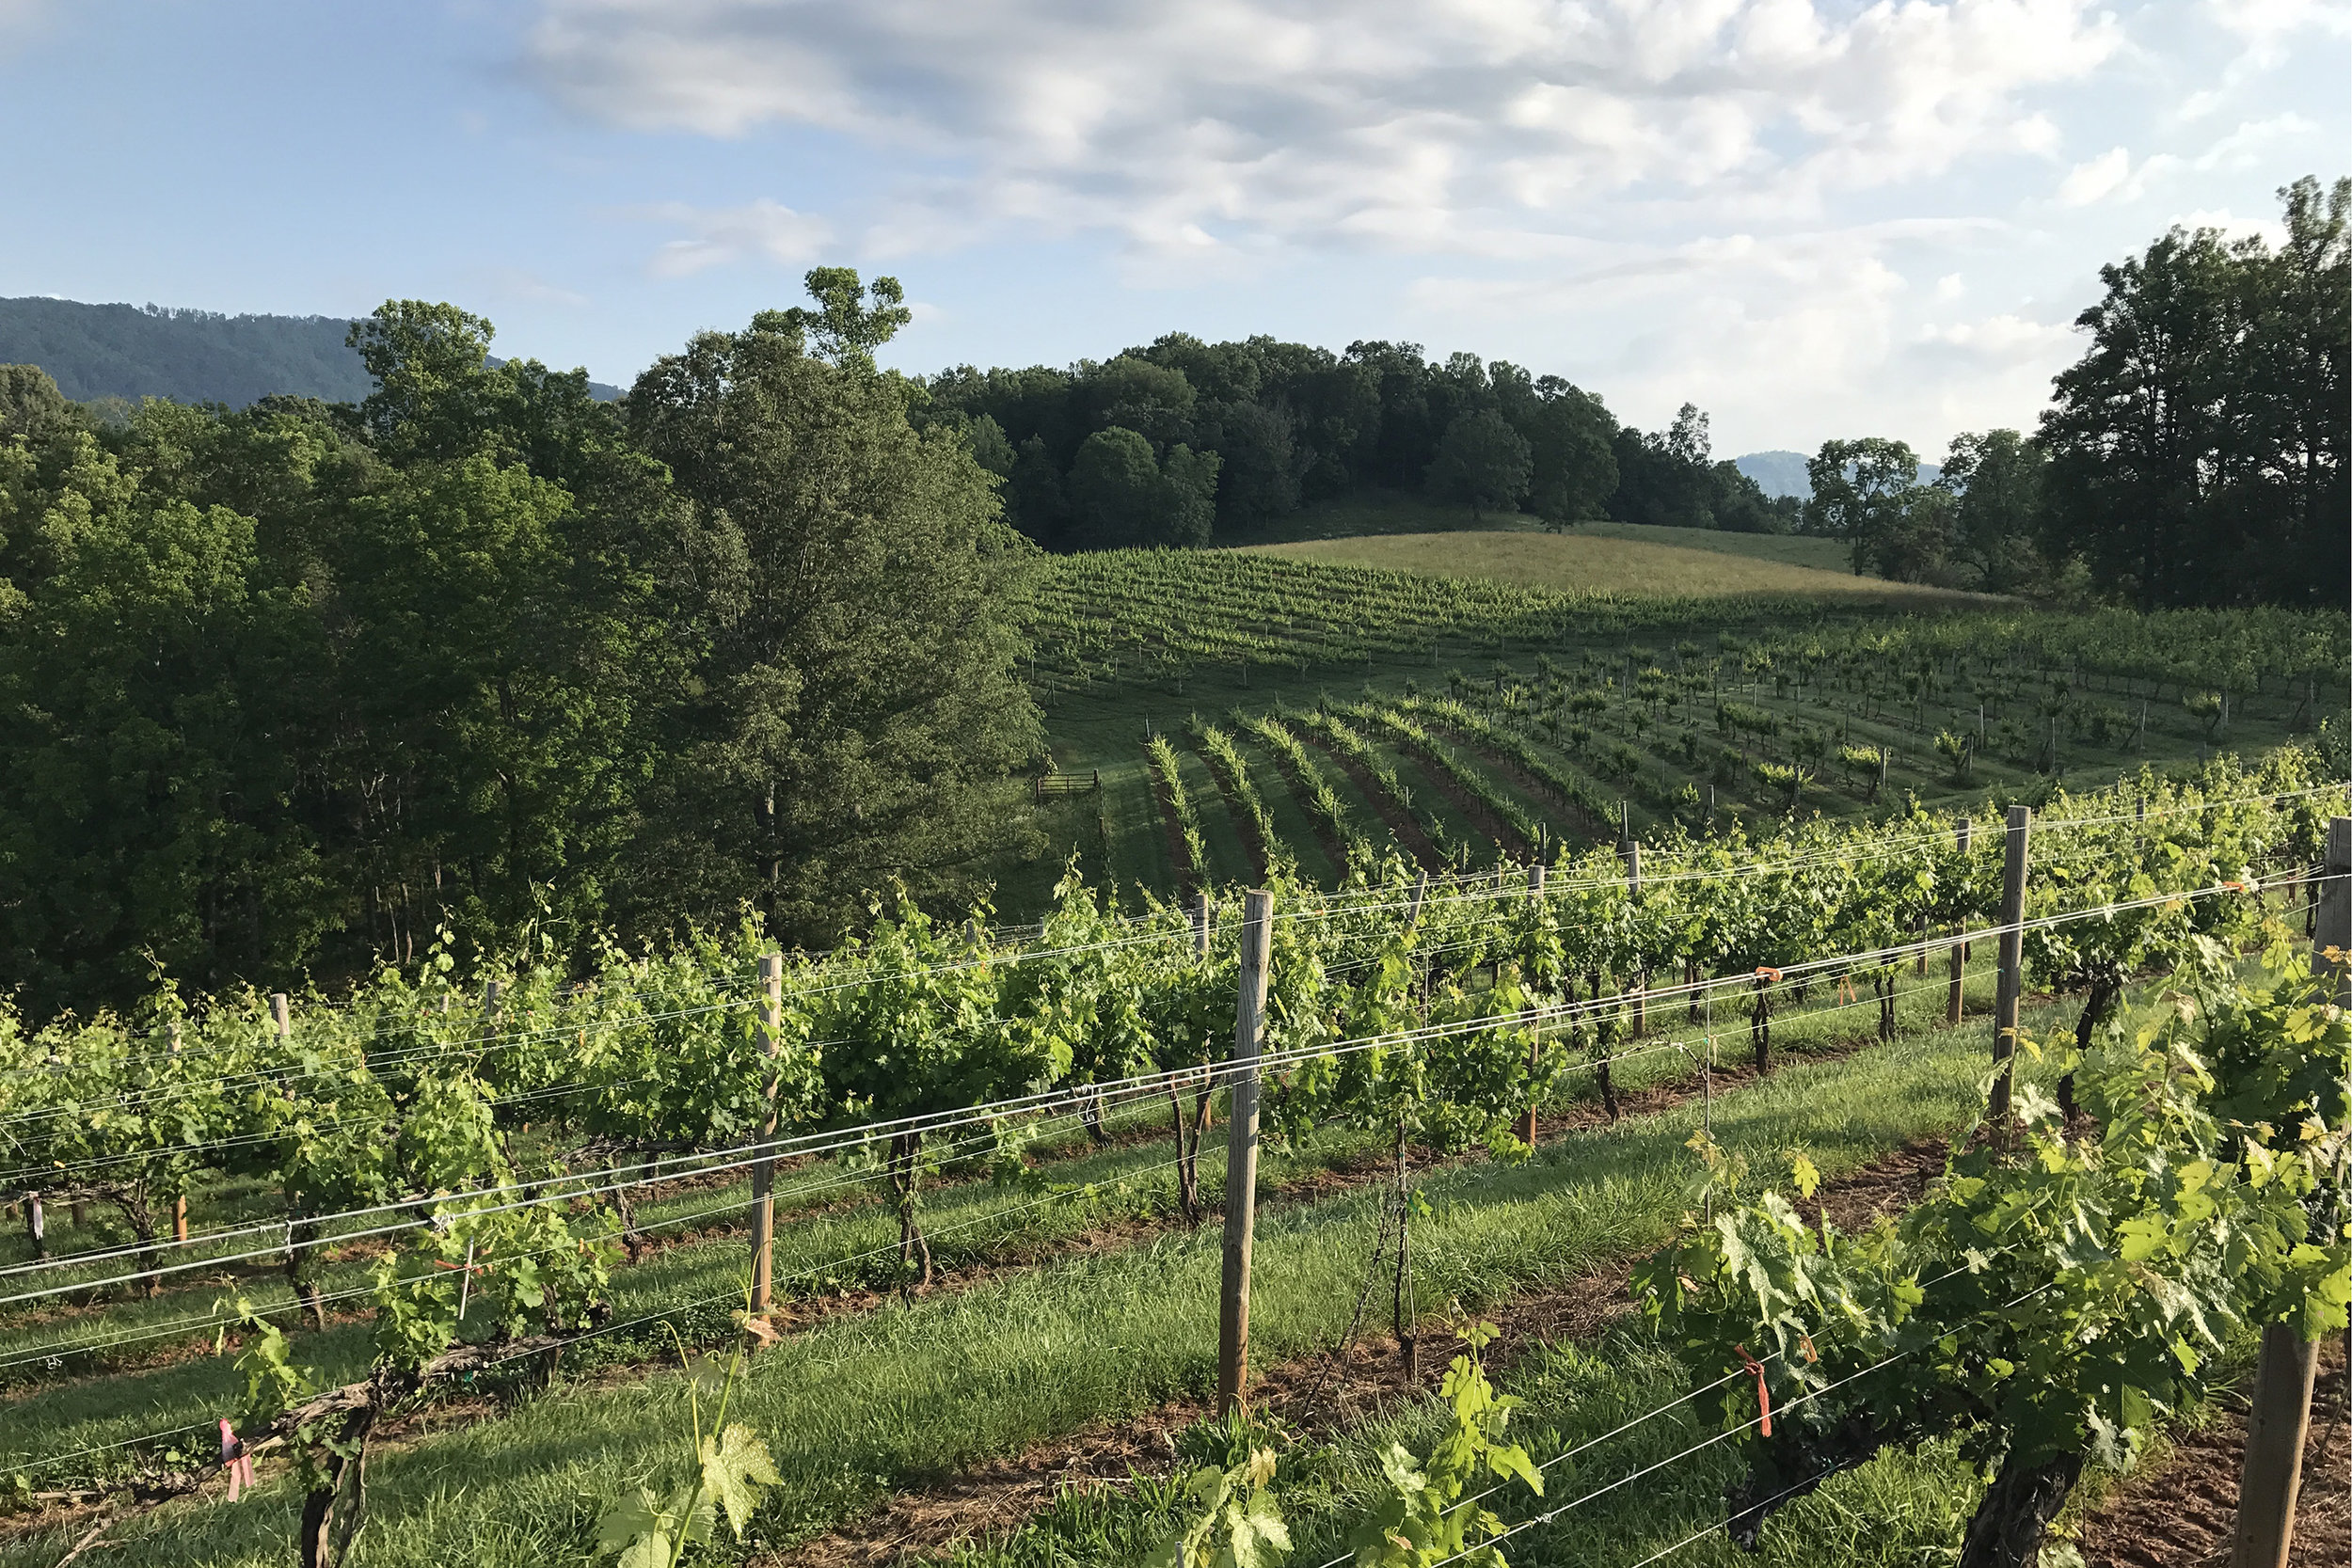 Morning view of the vineyard 2 June 2017